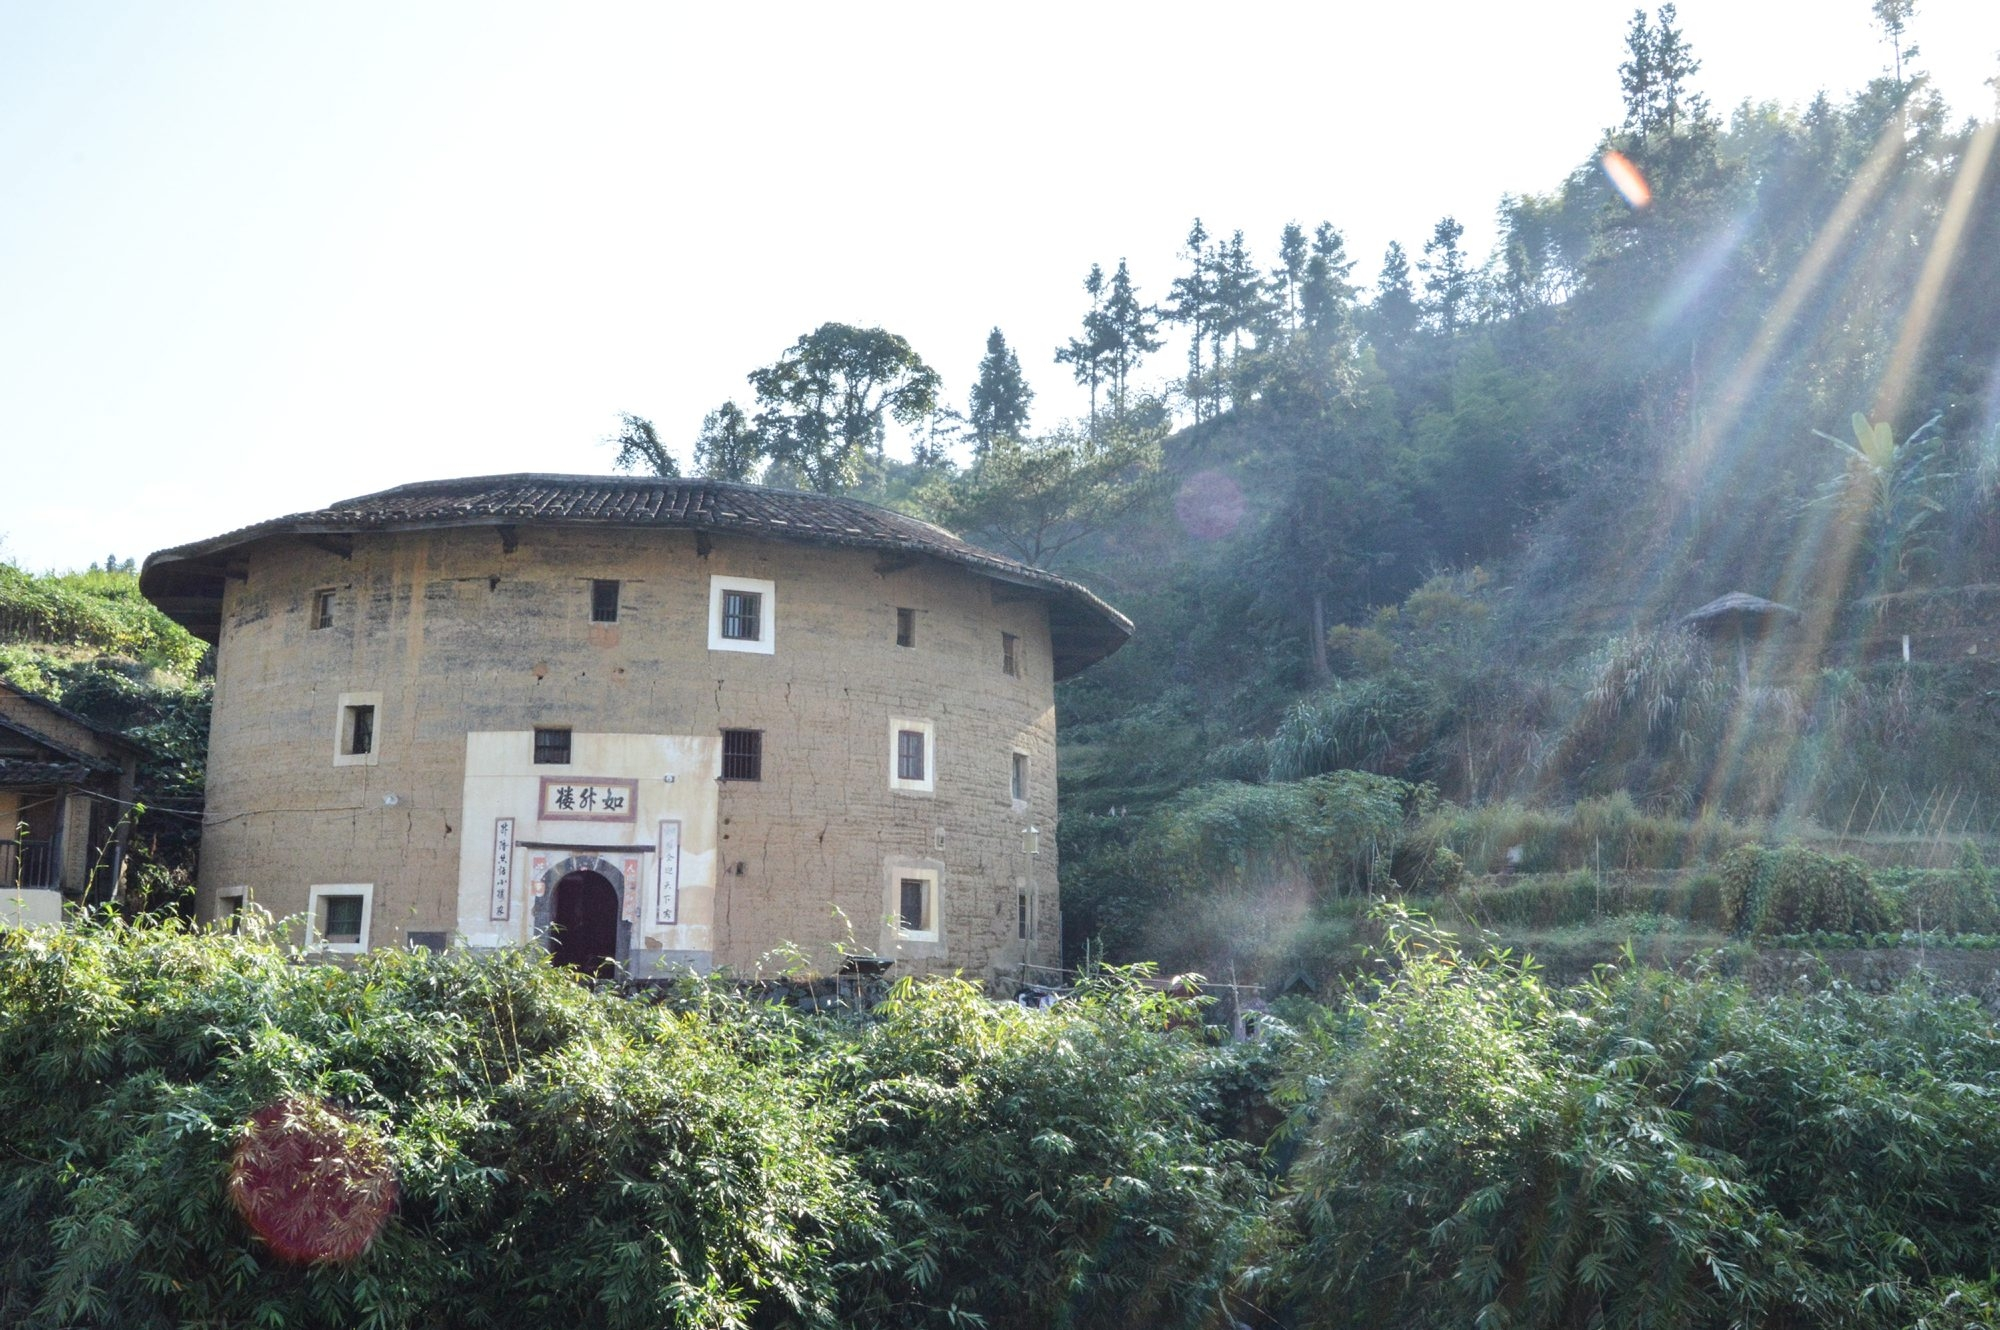 A small tulou sits on a river bank in the village of Hongkeng in rural Fujian province's Yongding county. Academics, preservation groups and residents say the clock is ticking on the ancient fortresses as living, breathing communities